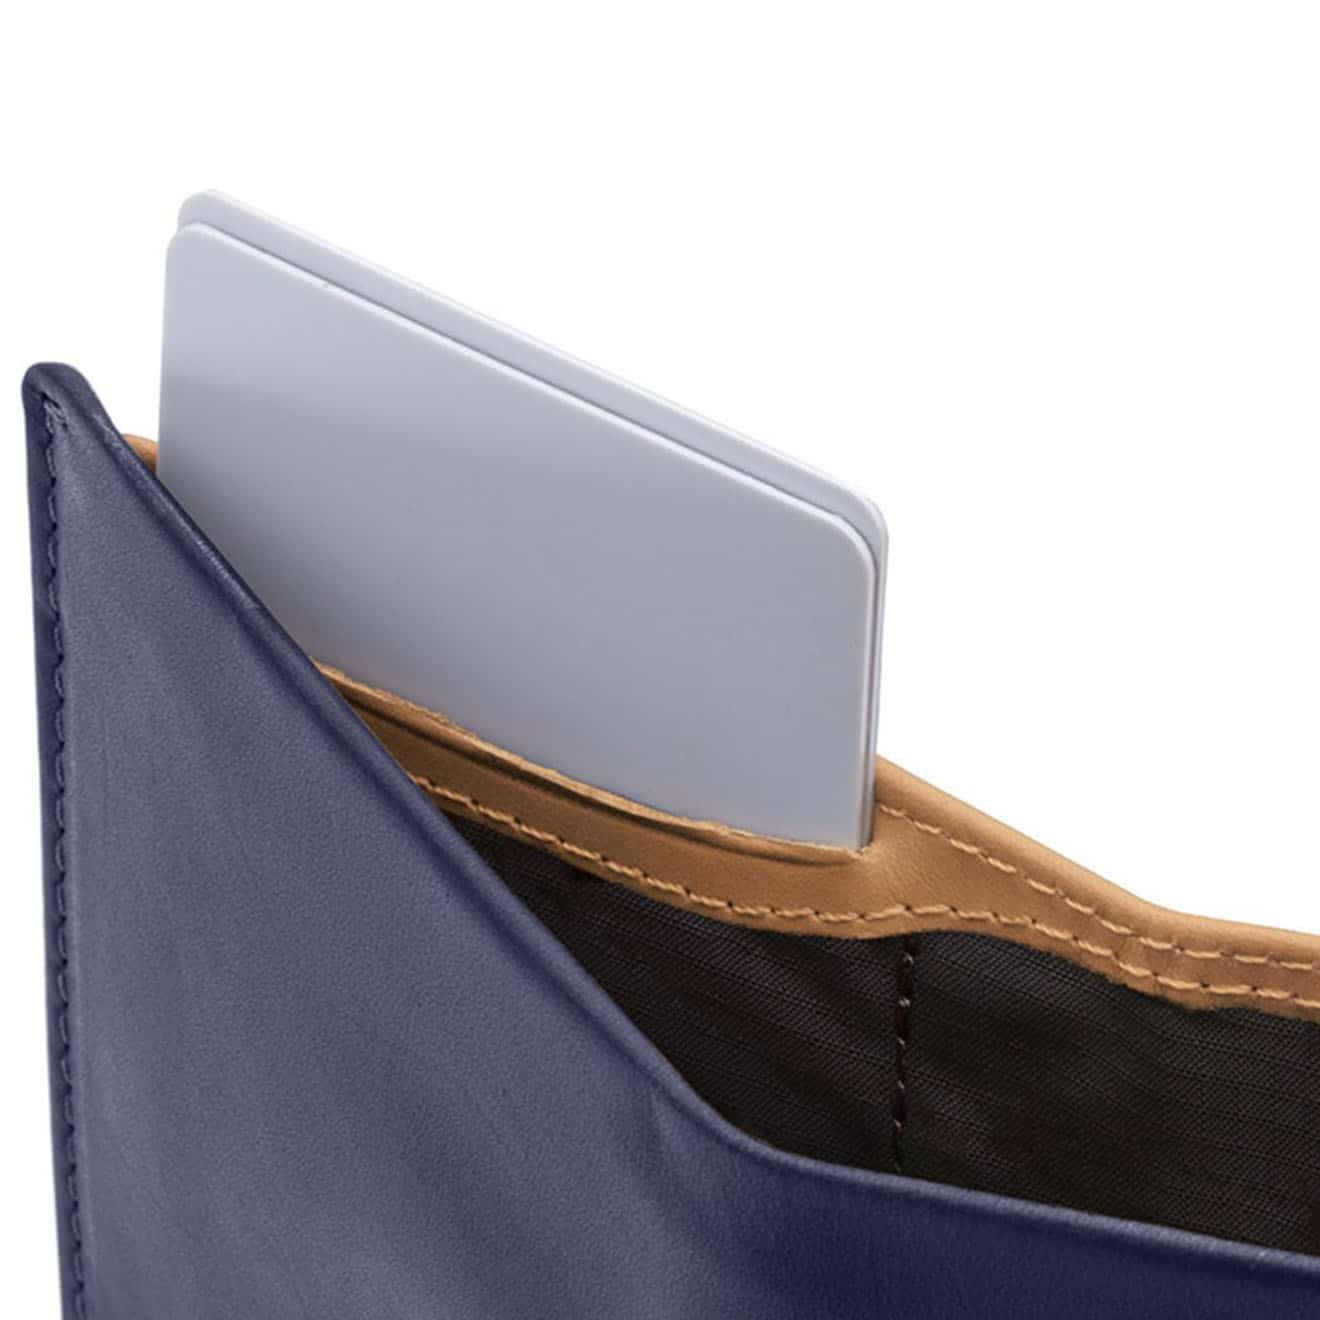 1f81c57581 Bellroy Note Sleeve Wallet Navy RFID - Parasol Store